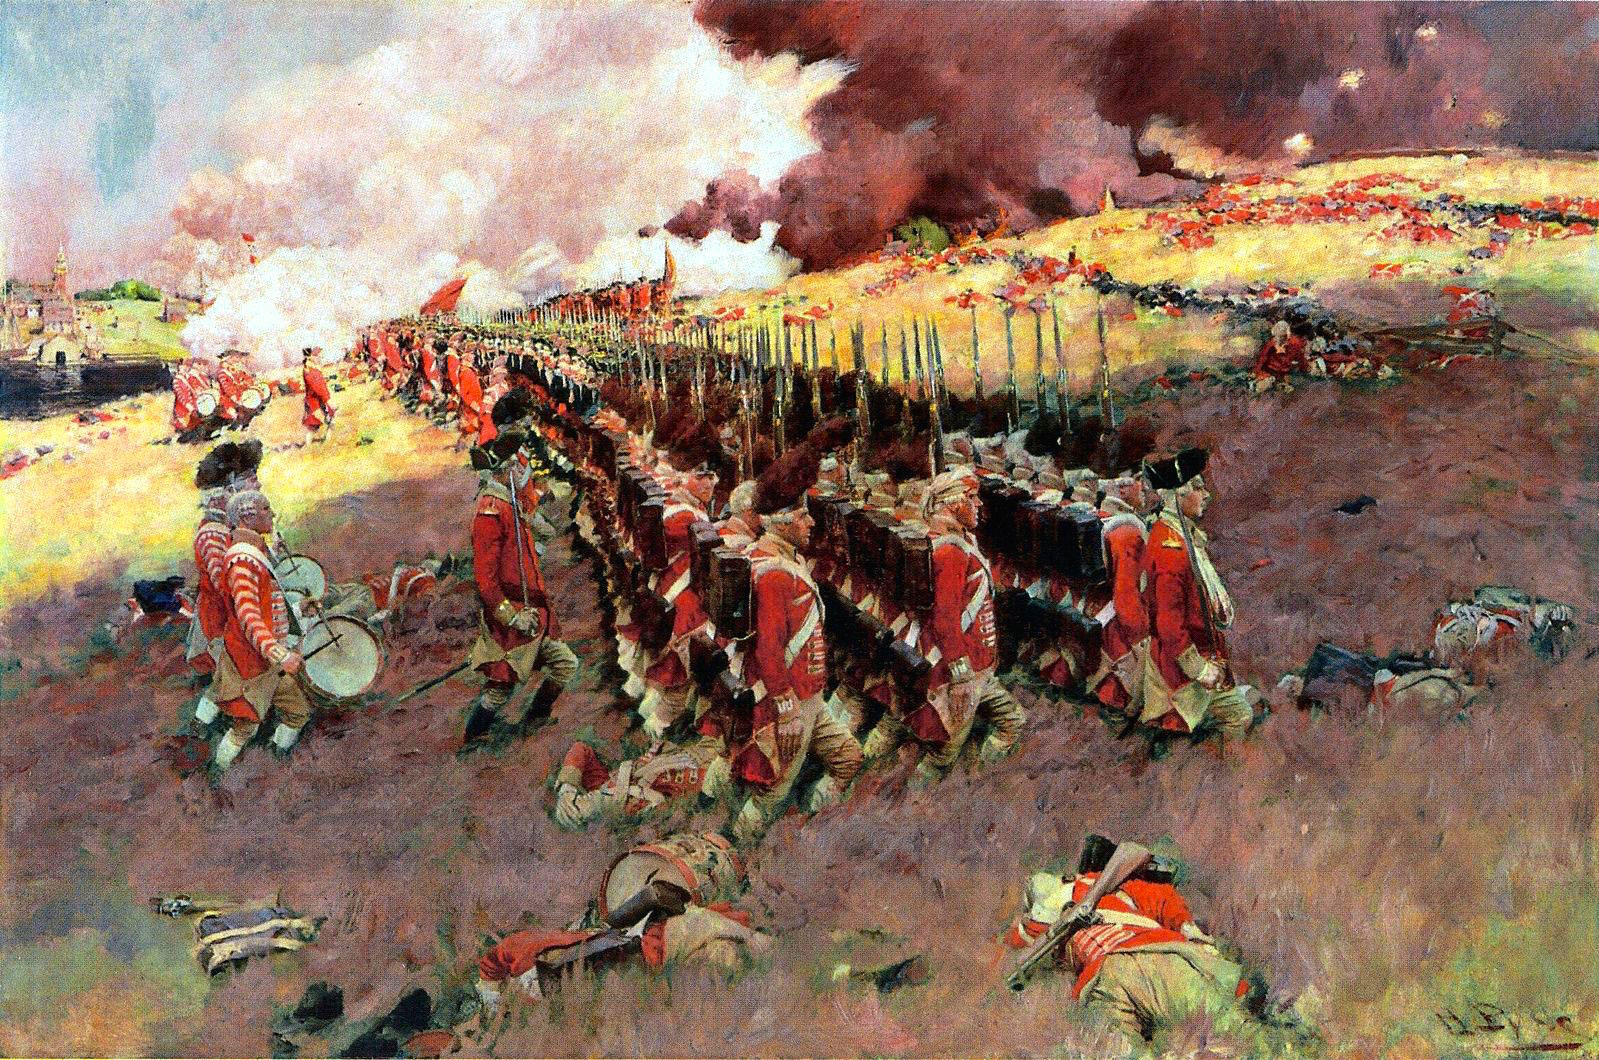 The Battle of Bunker Hill, by Howard Pyle